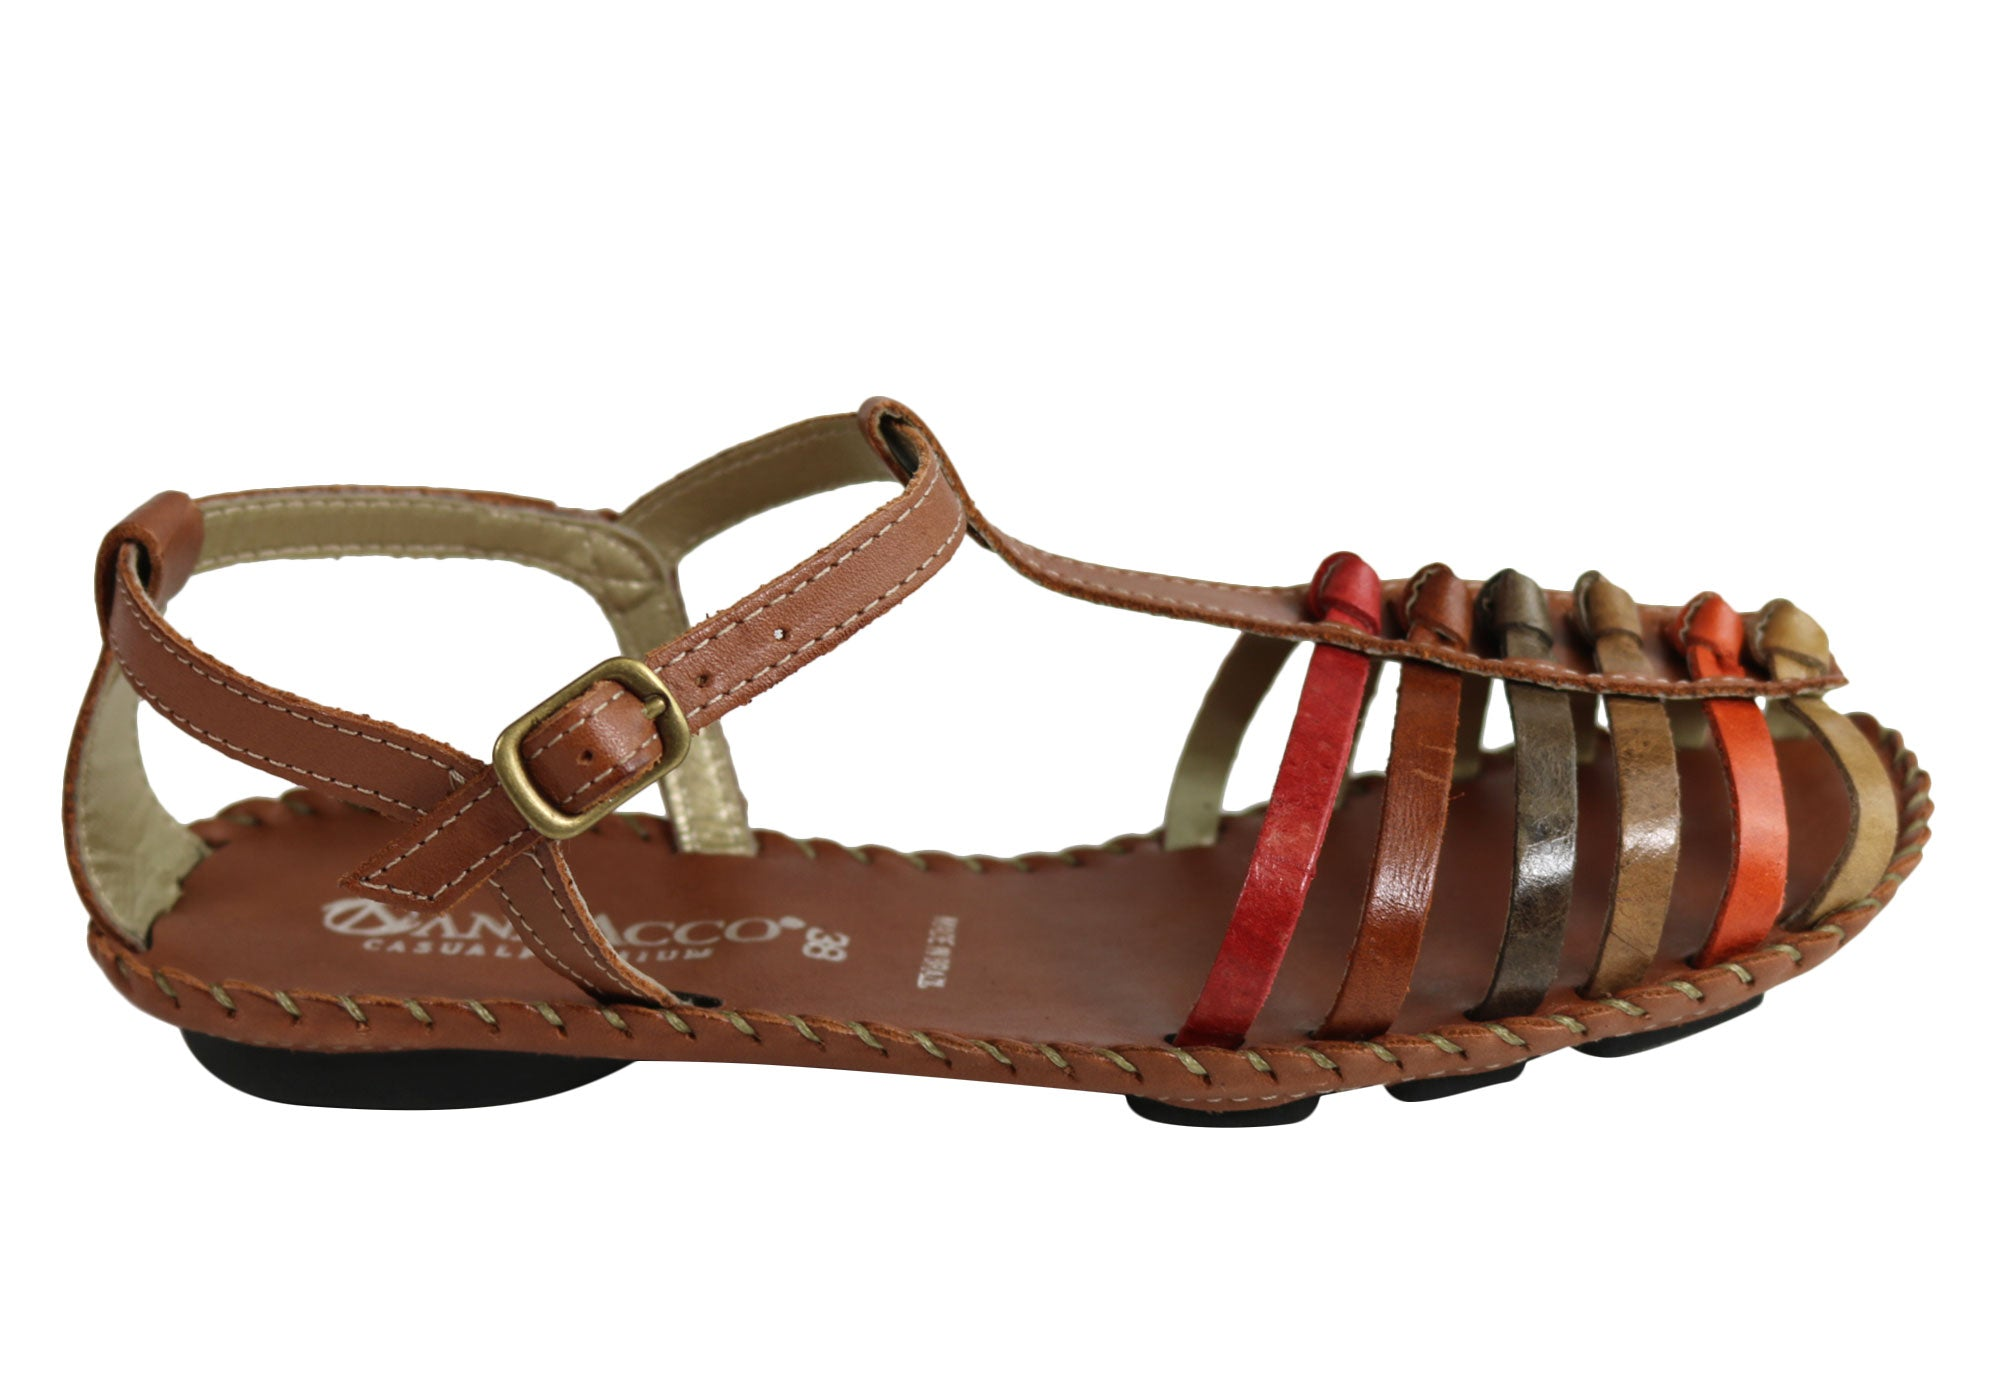 b57e874c8f7 Home Andacco Channa Womens Comfortable Flat Leather Sandals Made In Brazil.  Tan Multi ...